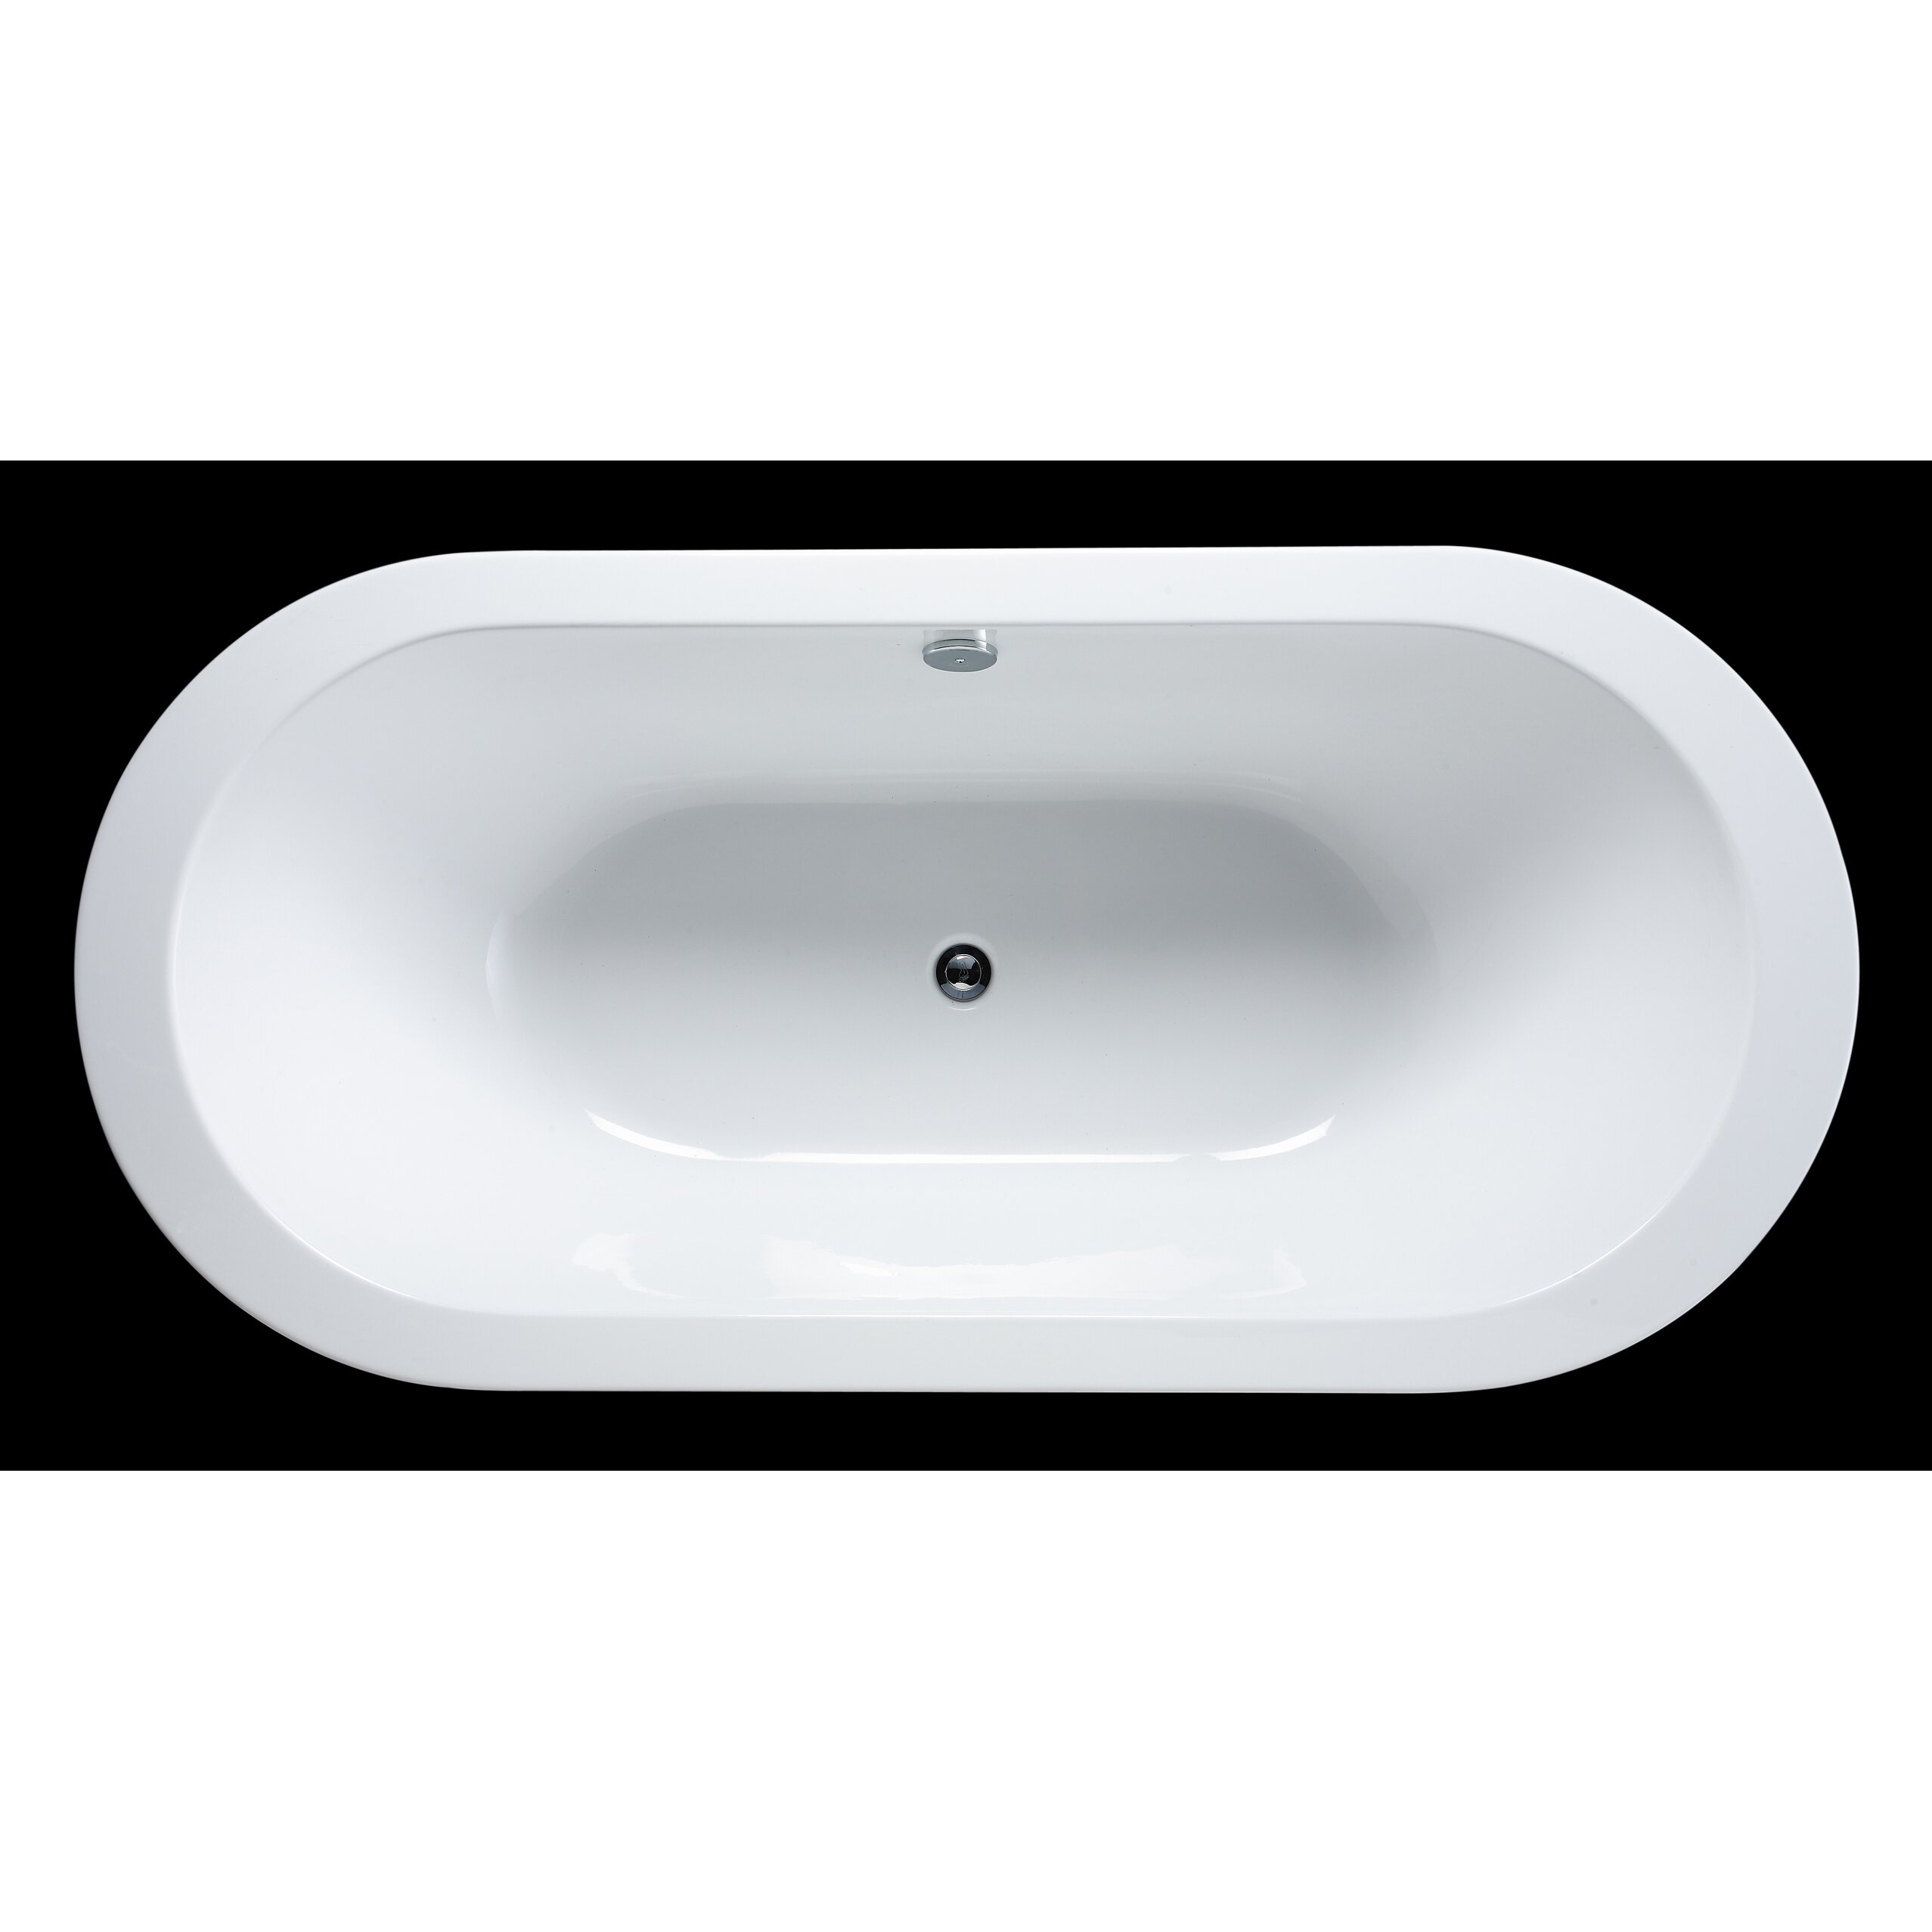 Ove Decors Serenity  X  Acrylic Freestanding Bathtub - Free standing tub dimensions